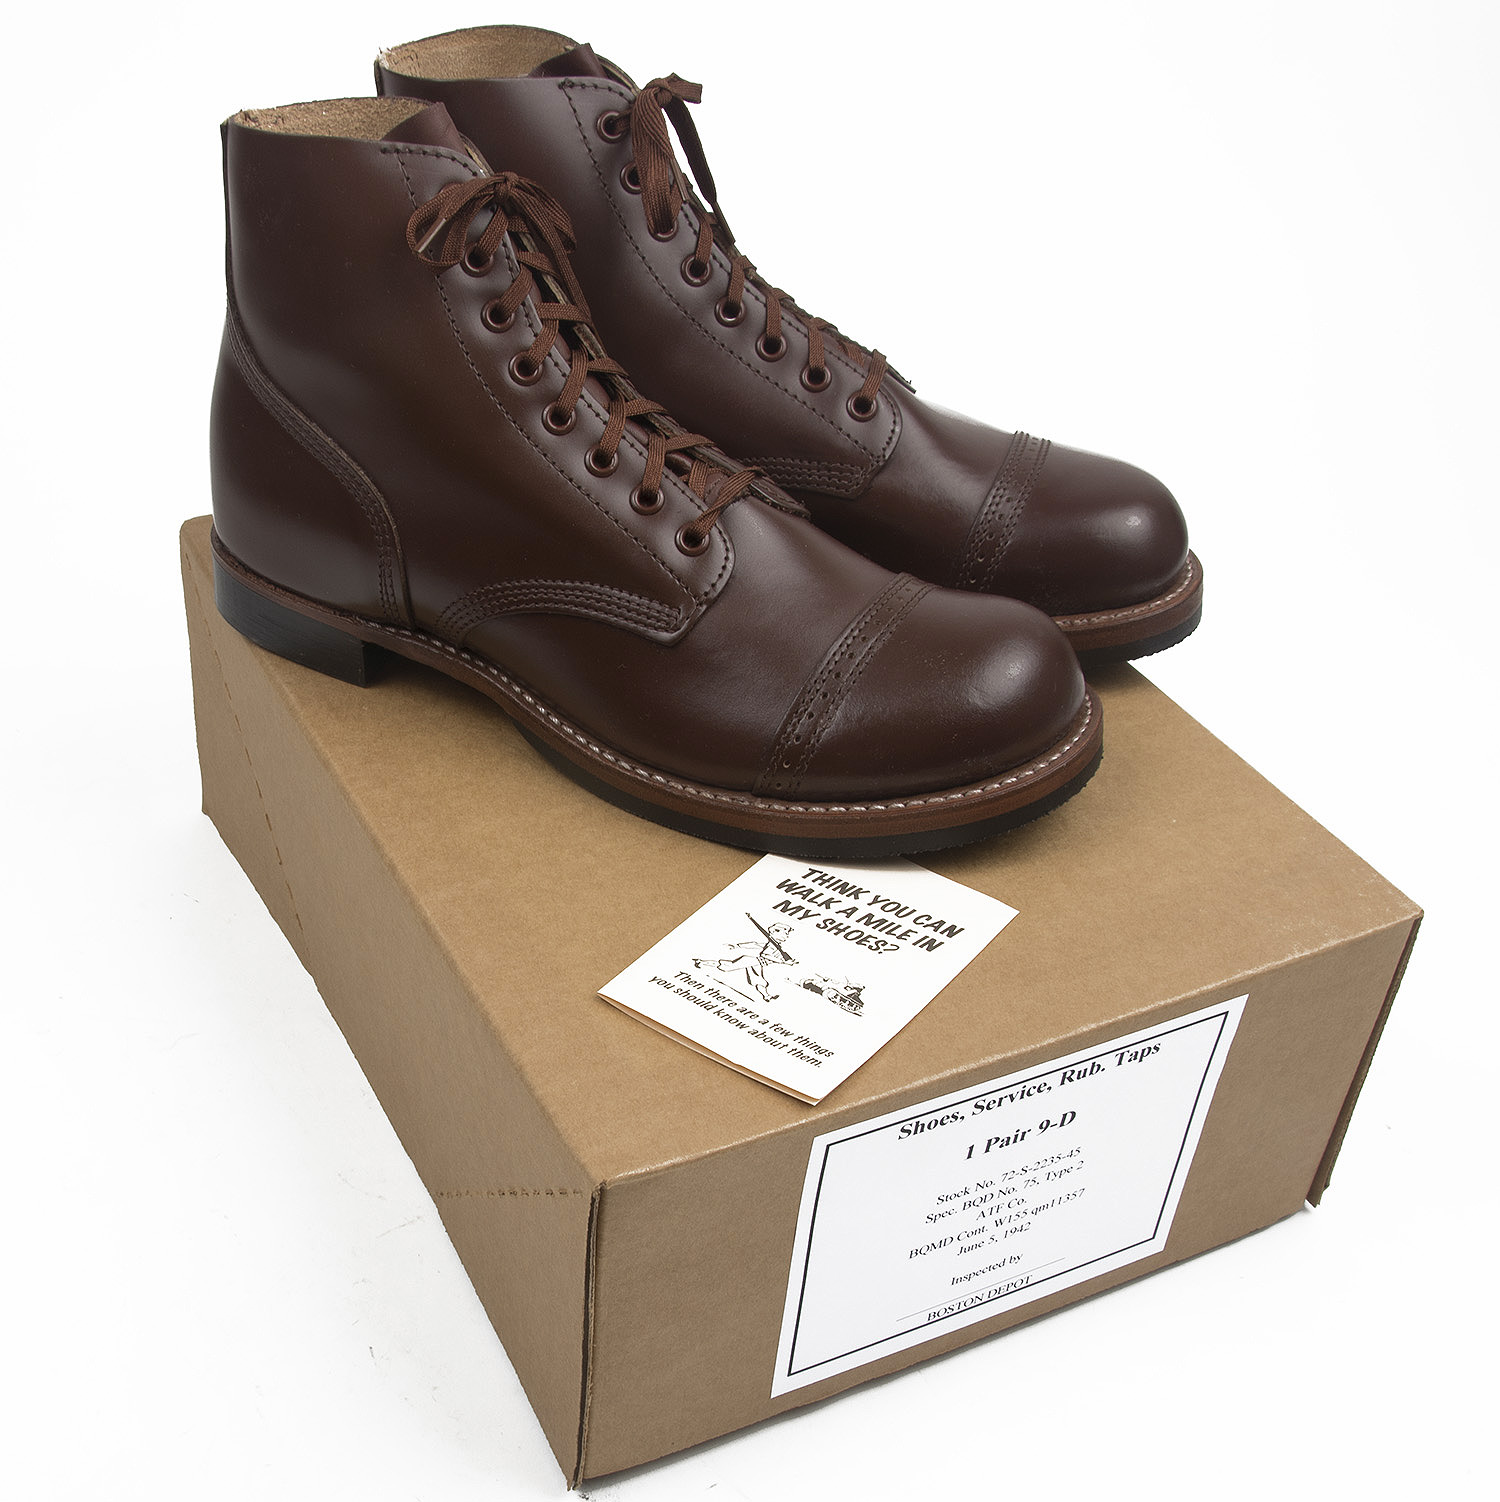 f6668f1f1f0e2 Brand new, American made reproduction of the standard issue boot worn by  soldiers and airmen throughout the Second World War. These are commonly  called